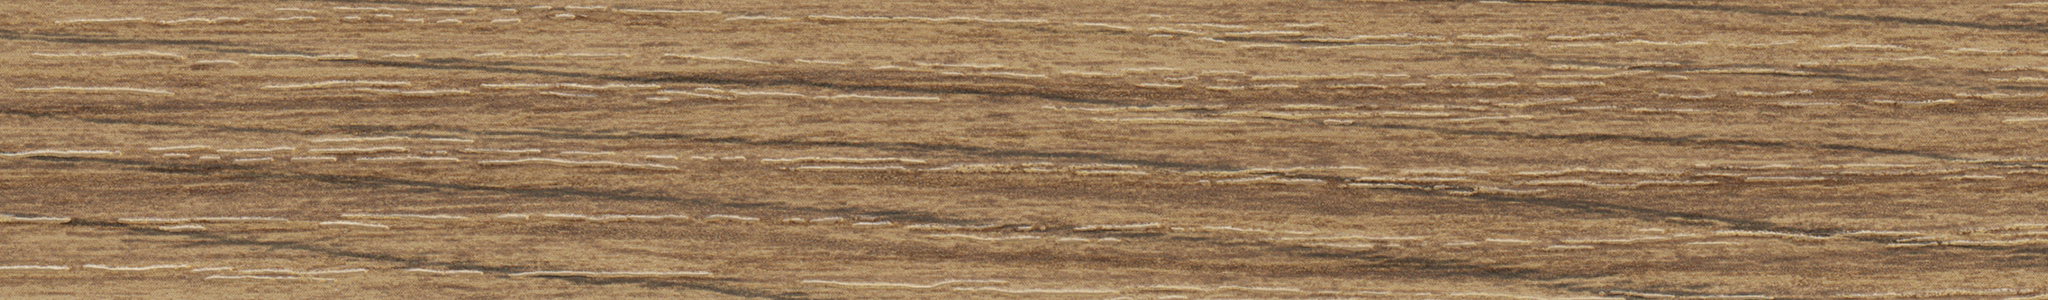 HD 268195 ABS Edge Sycamore Monaco Pore